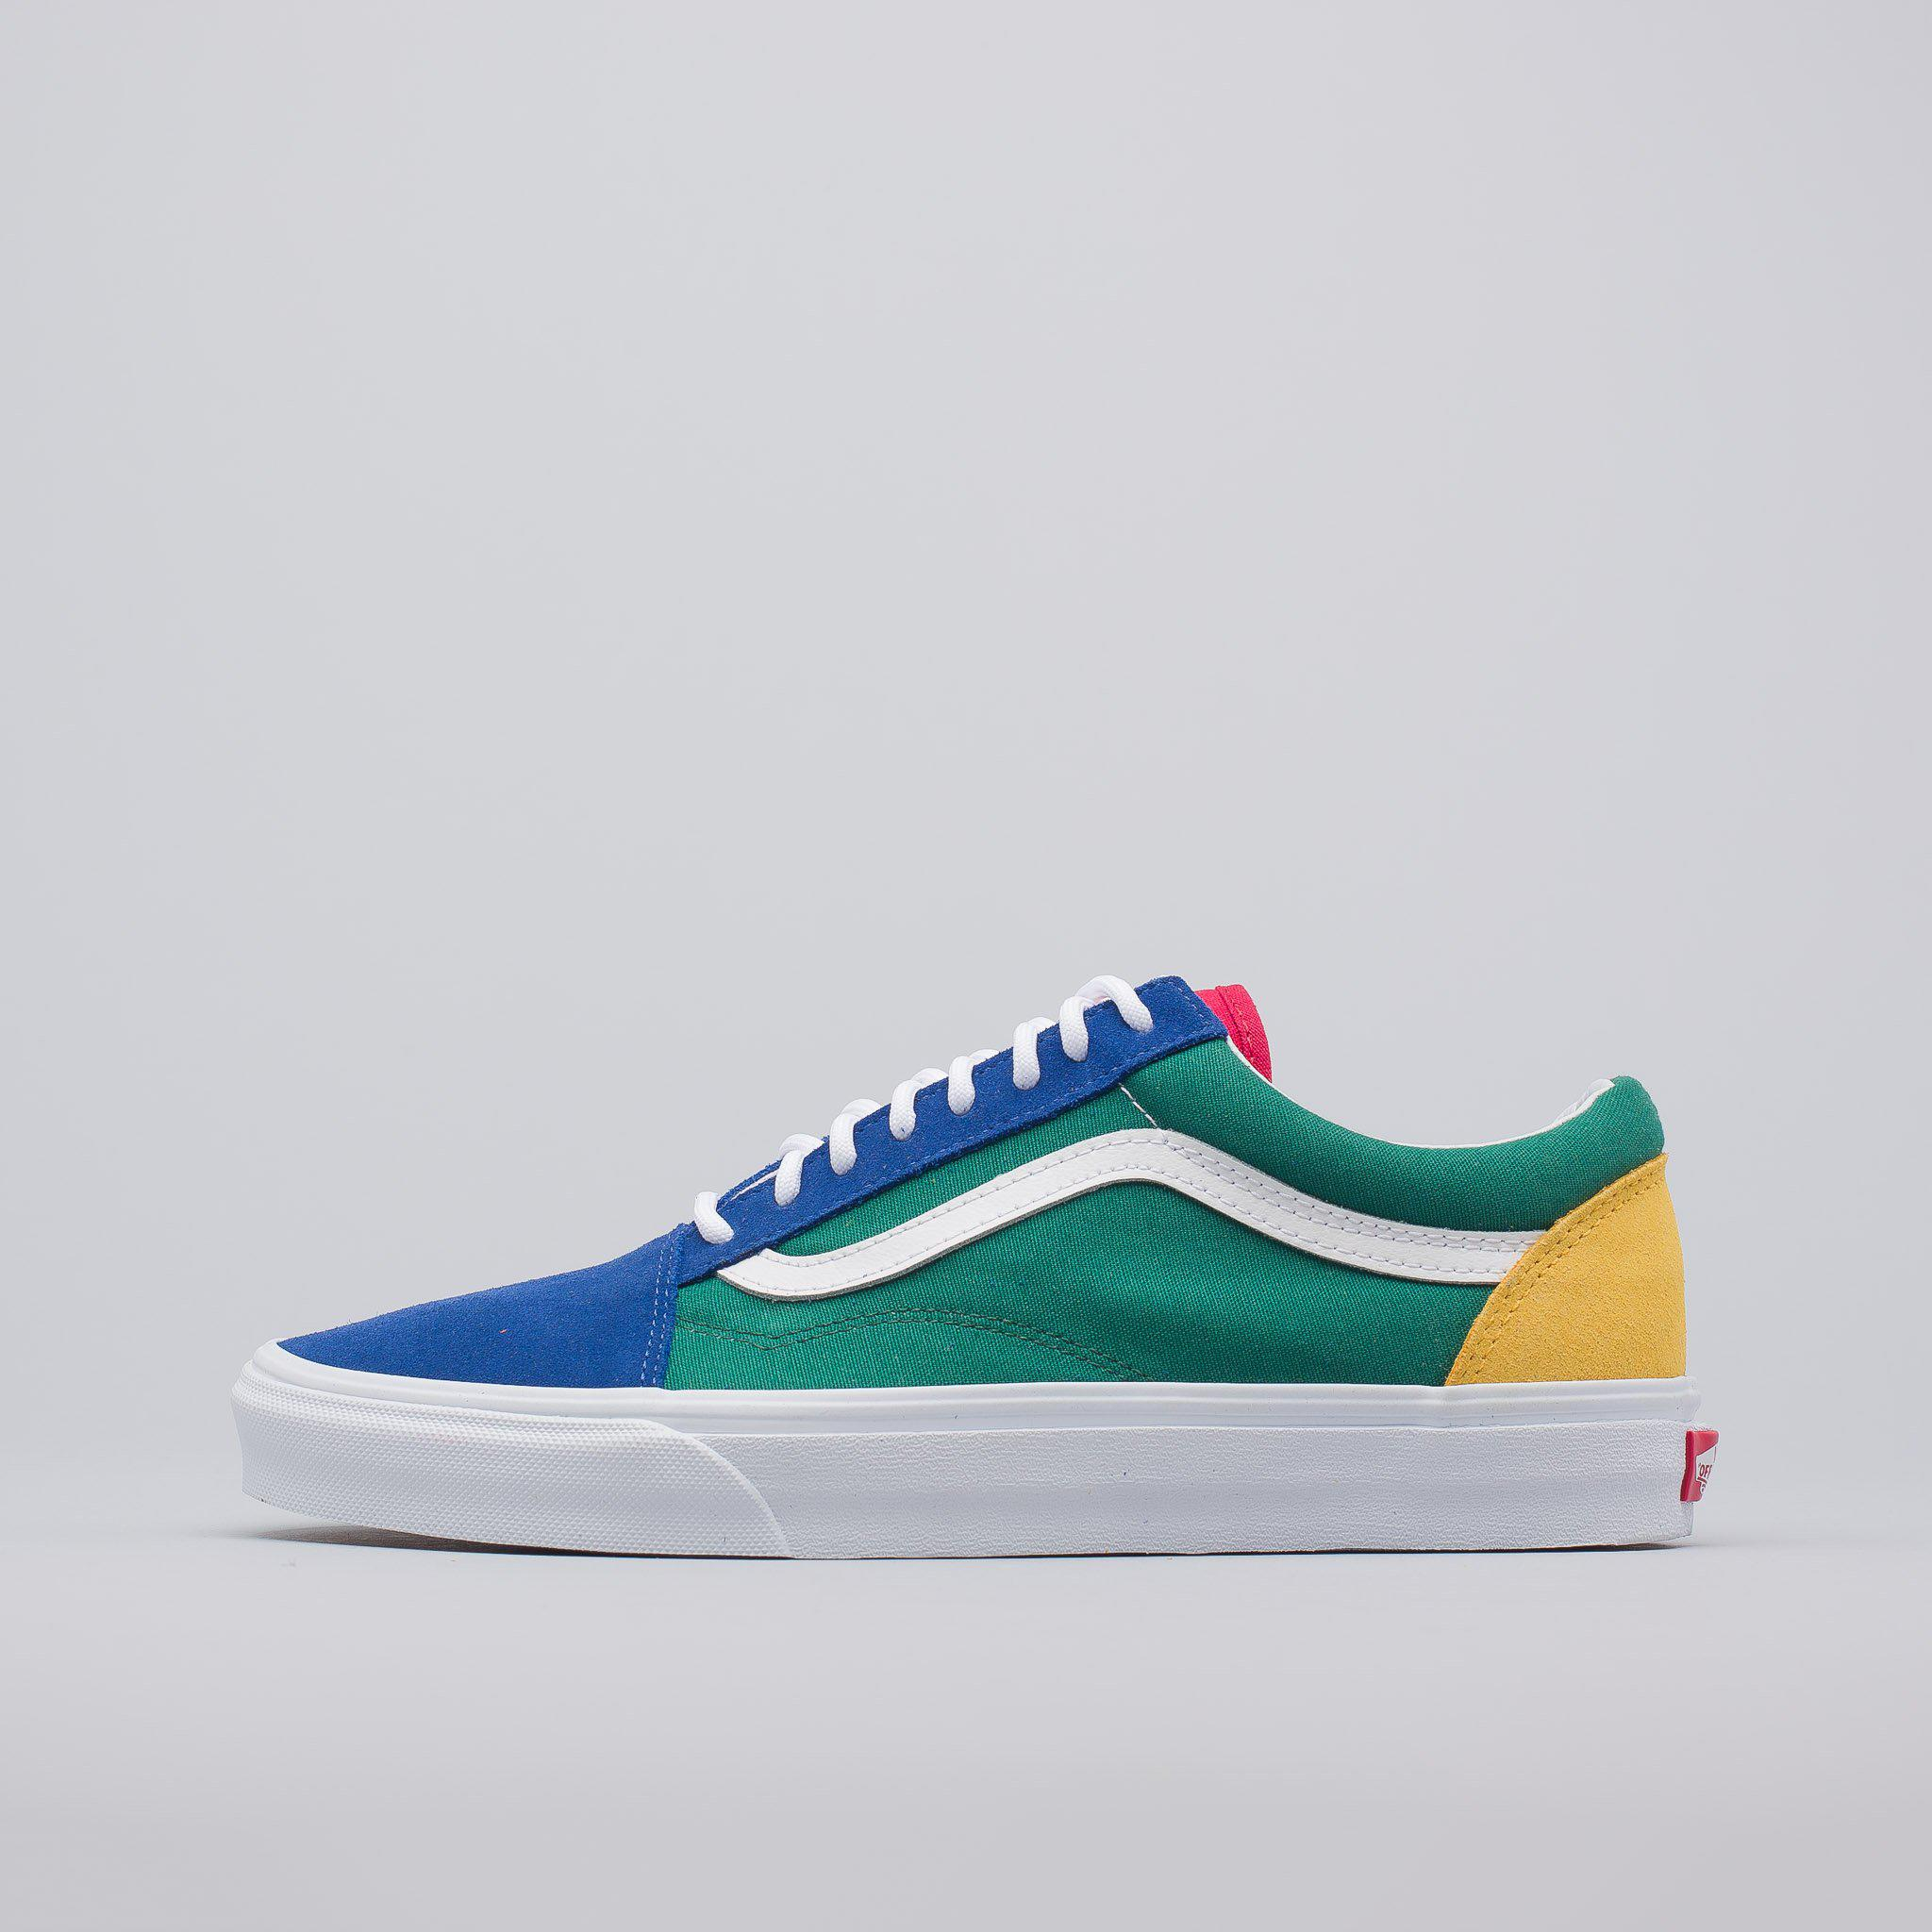 vans blue green yellow